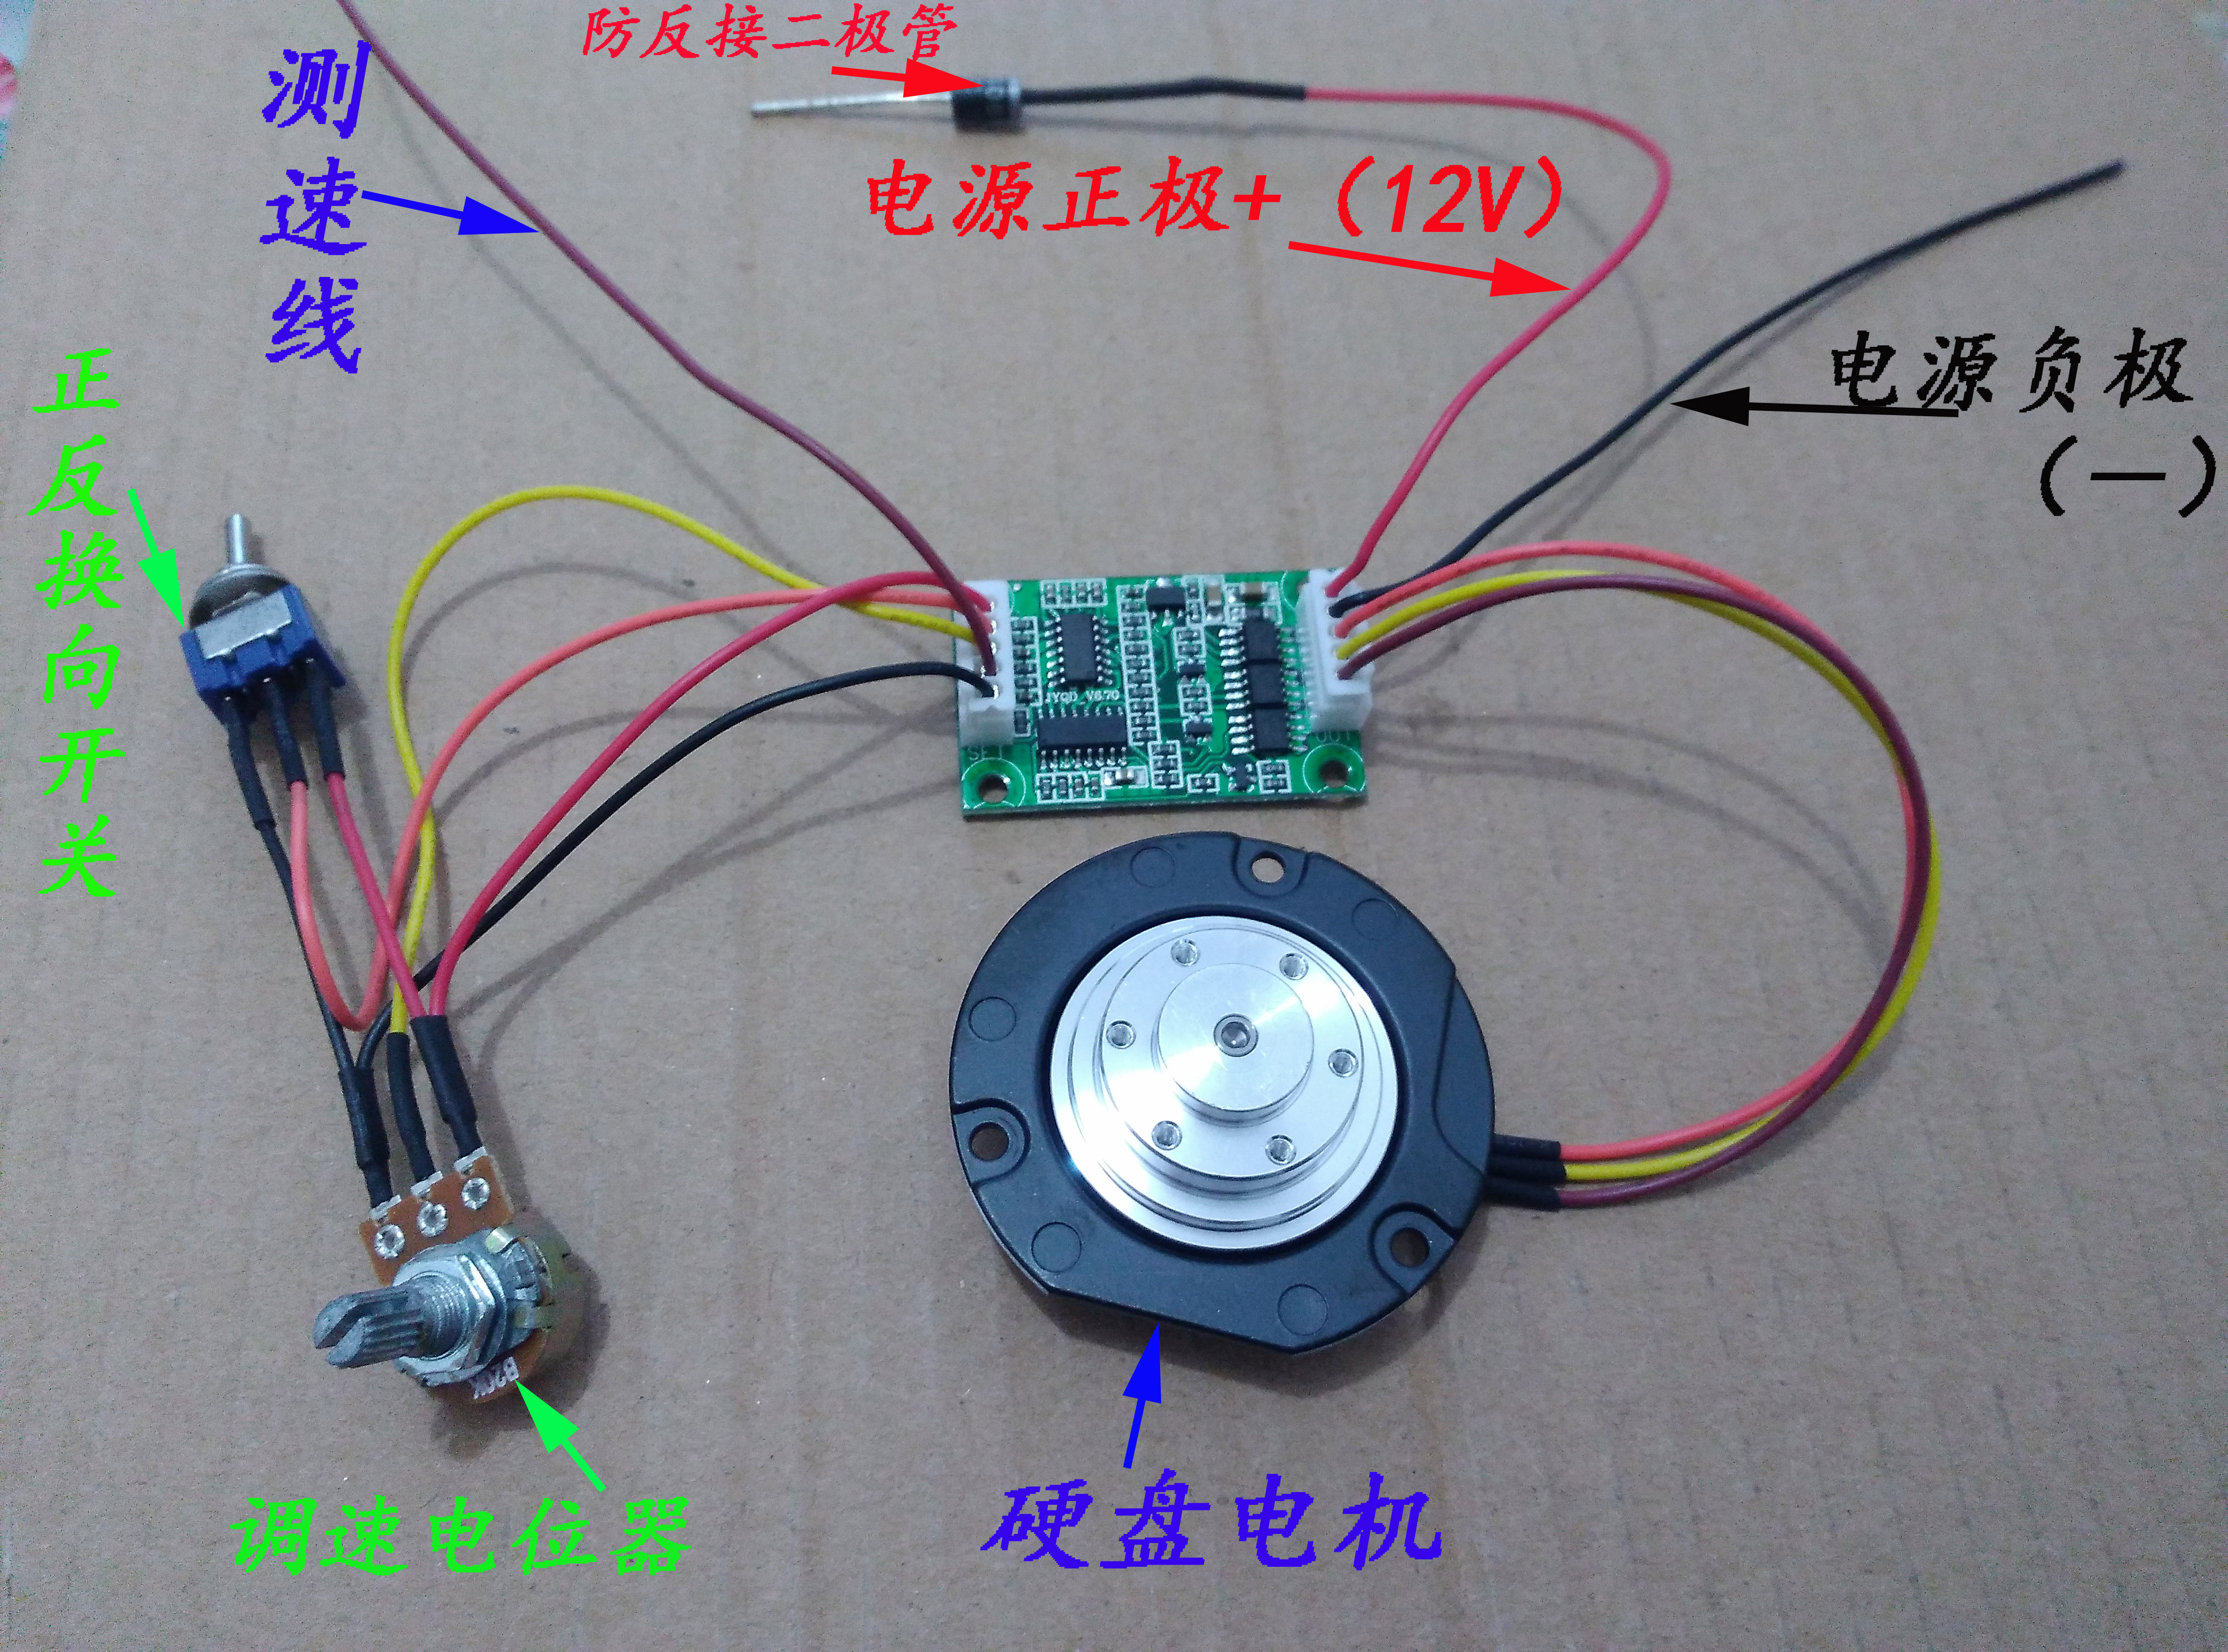 DC Brushless Holzer Motor Drive Plate Hard Disk Motor Controller With Positive And Negative Speed Regulation